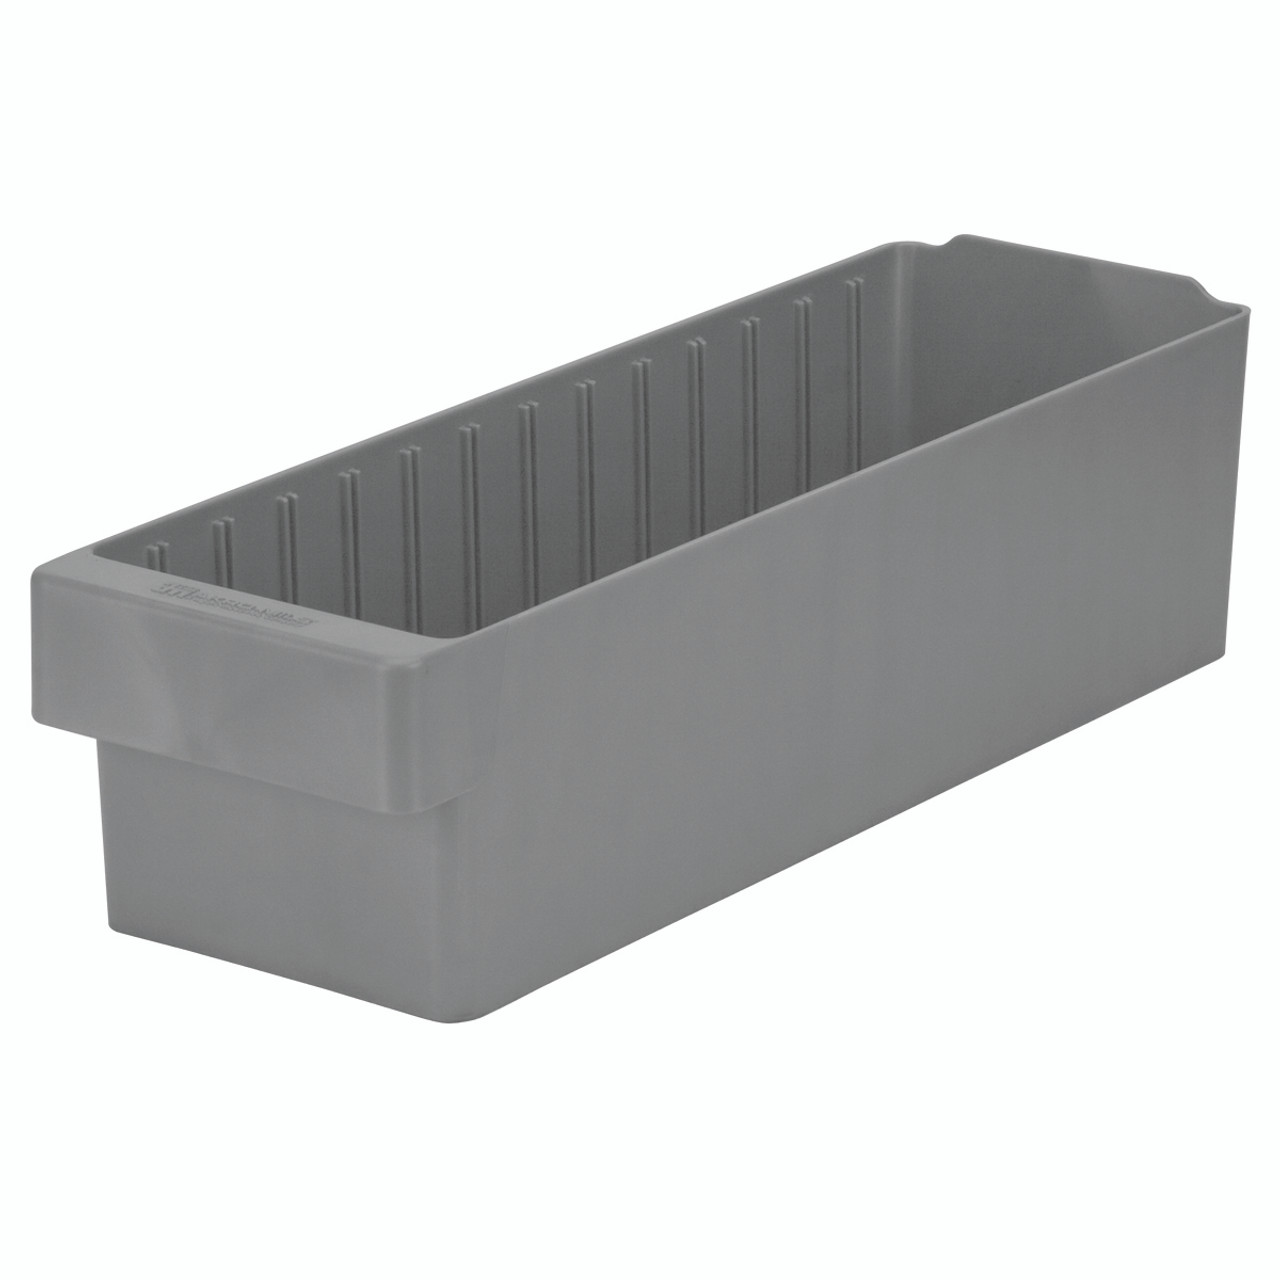 Drawer, AkroDrawer 17-5/8 x 5-5/8 x 4-5/8, Gray  31168GRY